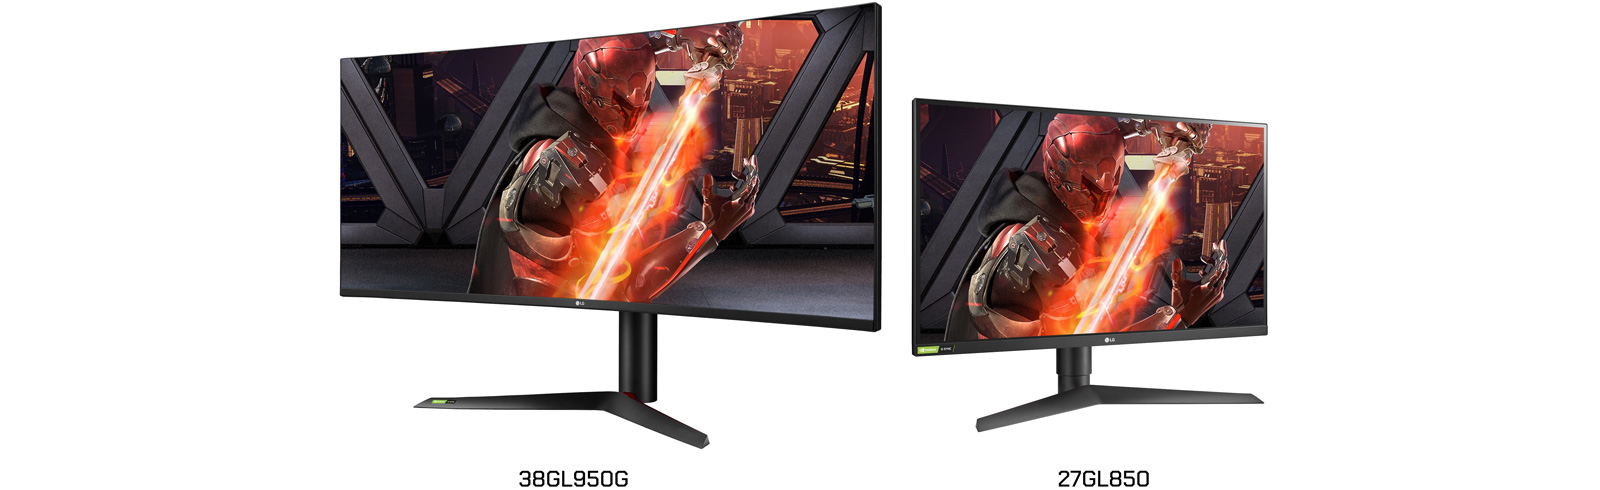 The world's first IPS gaming monitor with 1 ms response time is announced